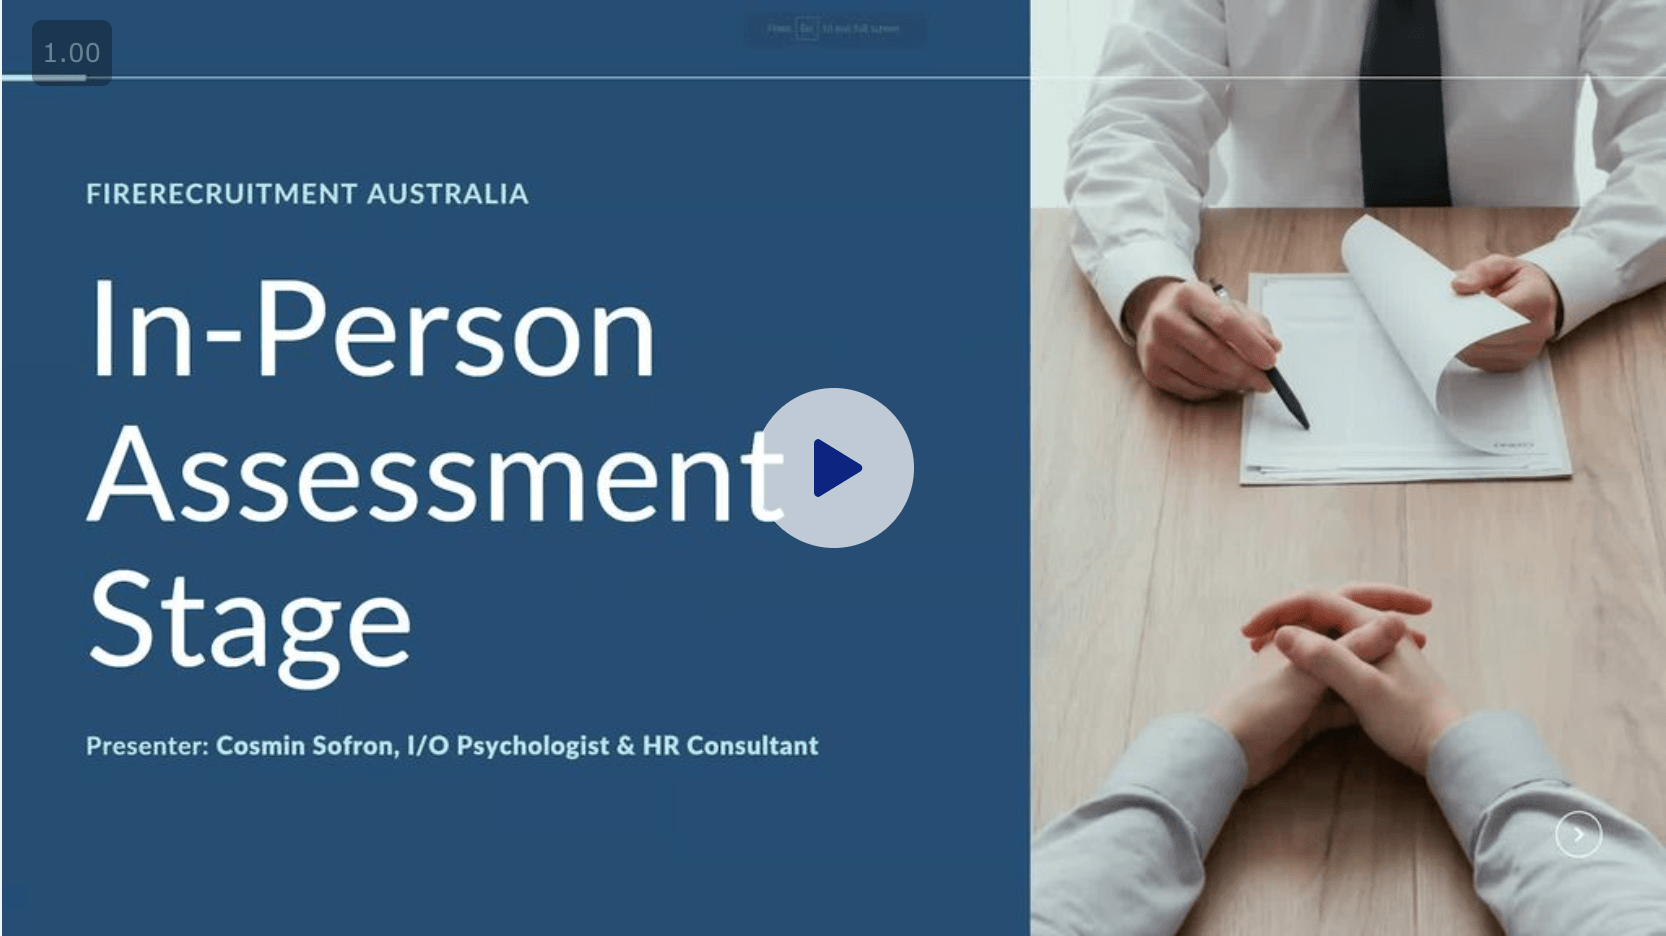 QFES firefighter psych test